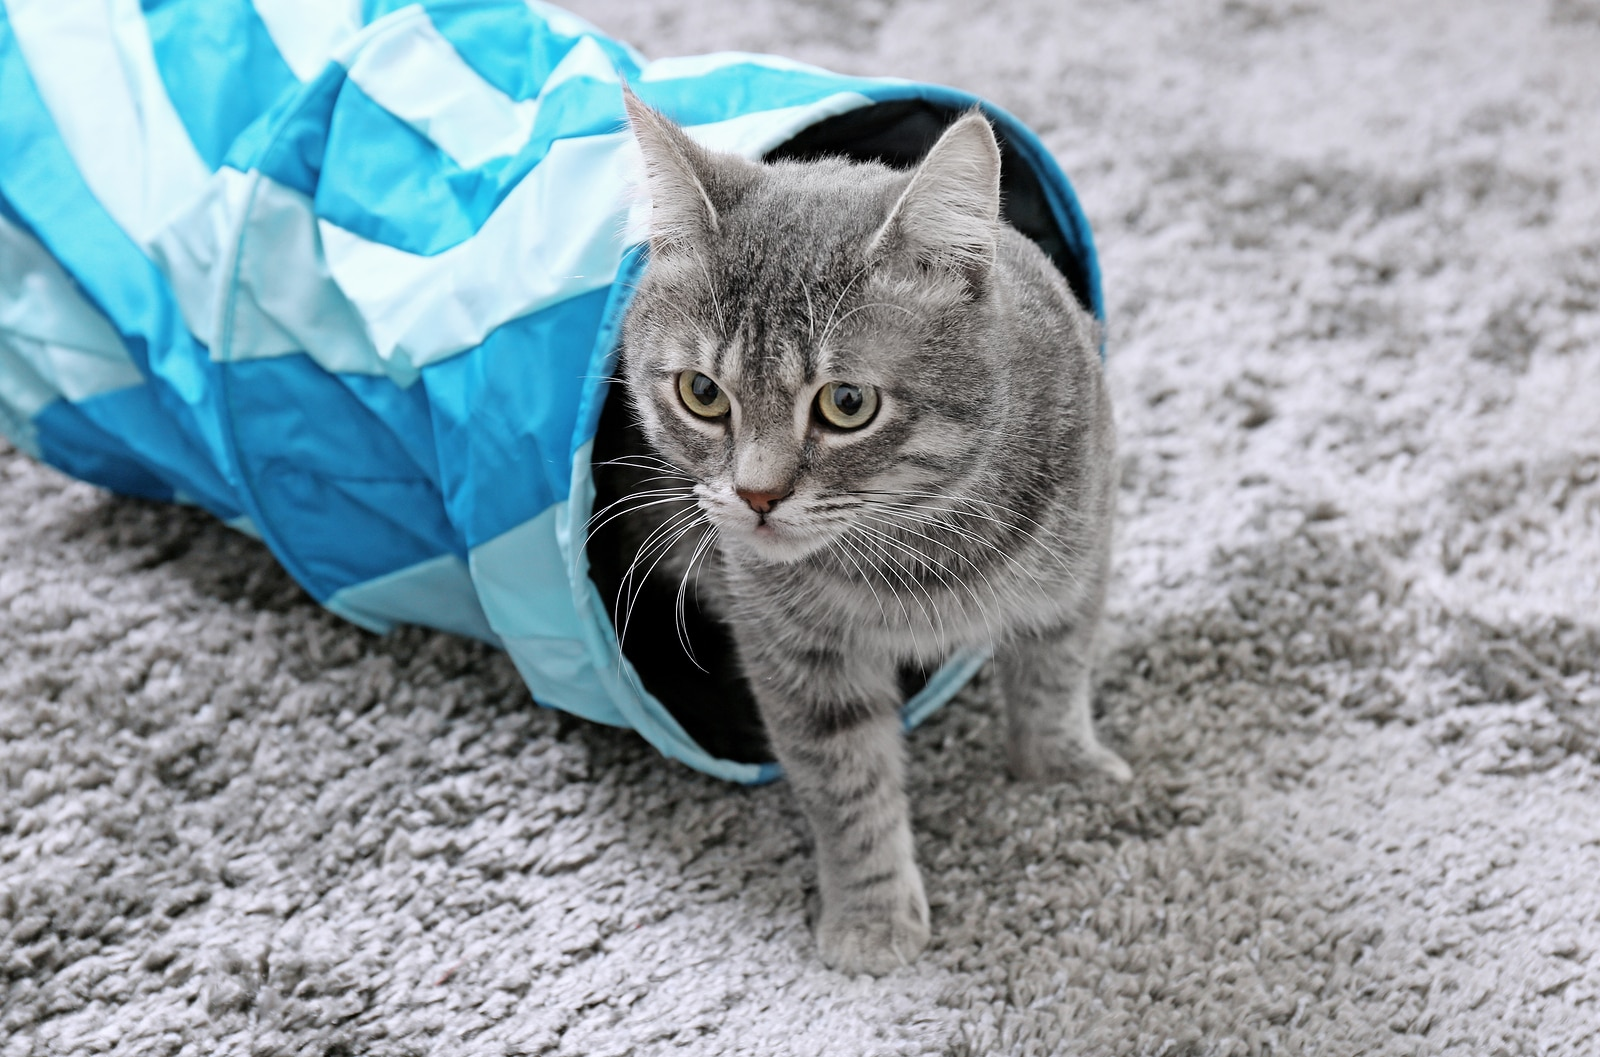 Cat coming out of blue cat tunnel on gray carpet.